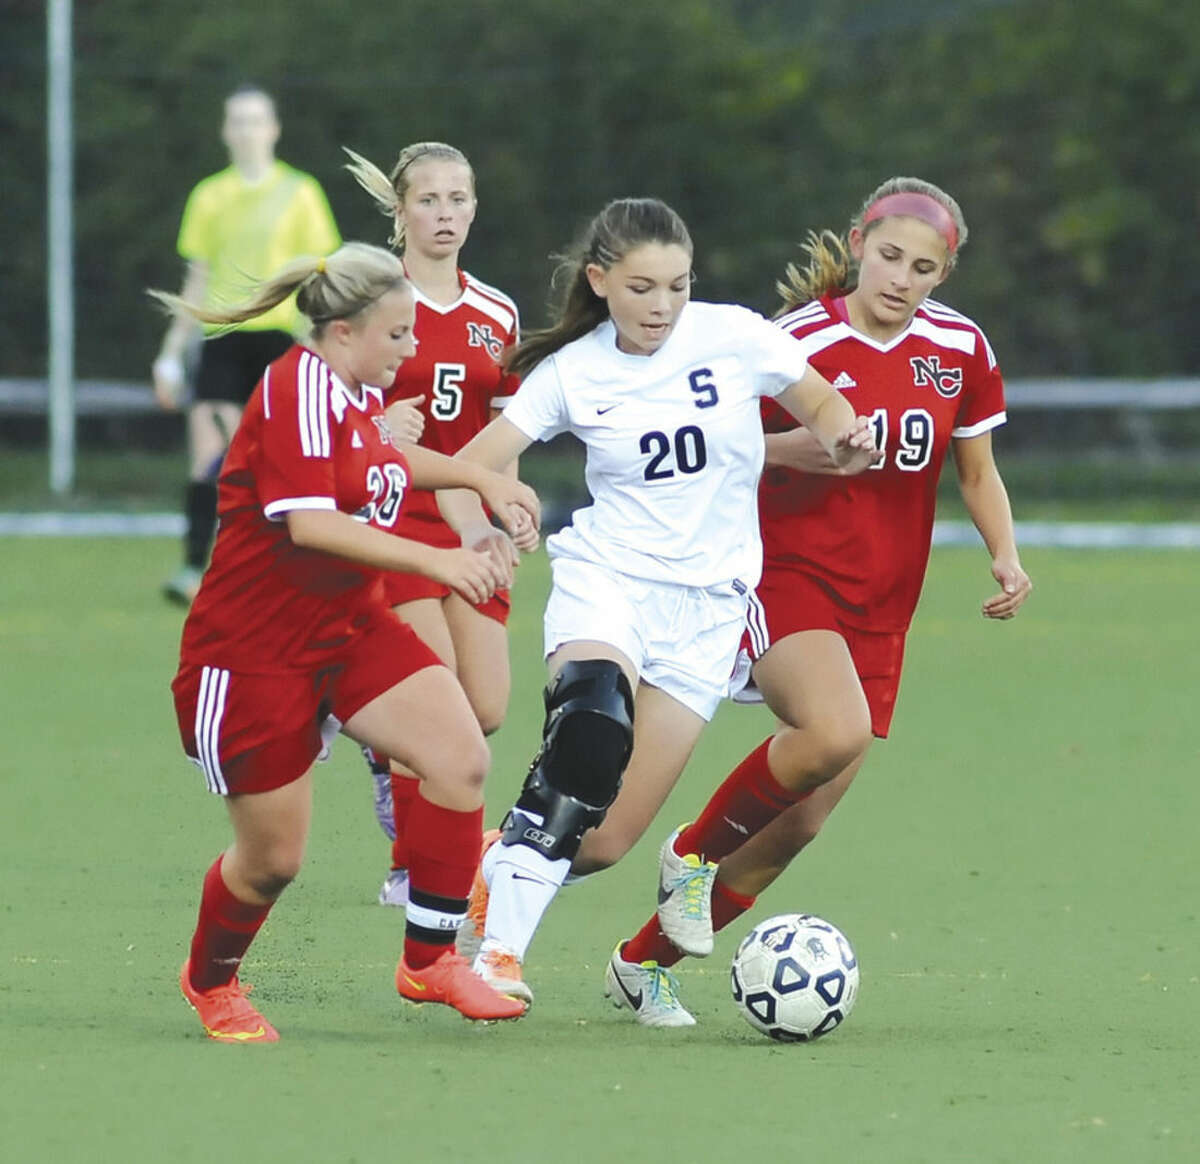 Hour photo/John Nash Staples' Anne Amacker (20) keeps control of the ball while surrounded by New Canaan players, from left, Courtney Overacker, Braeden Dial, and Katharine Kuchinski during Monday's FCIAC semifinal played at Kristine Lilly Field in Wilton. Staples won, 4-0, to advance to its first FCIAC title game since 1995.